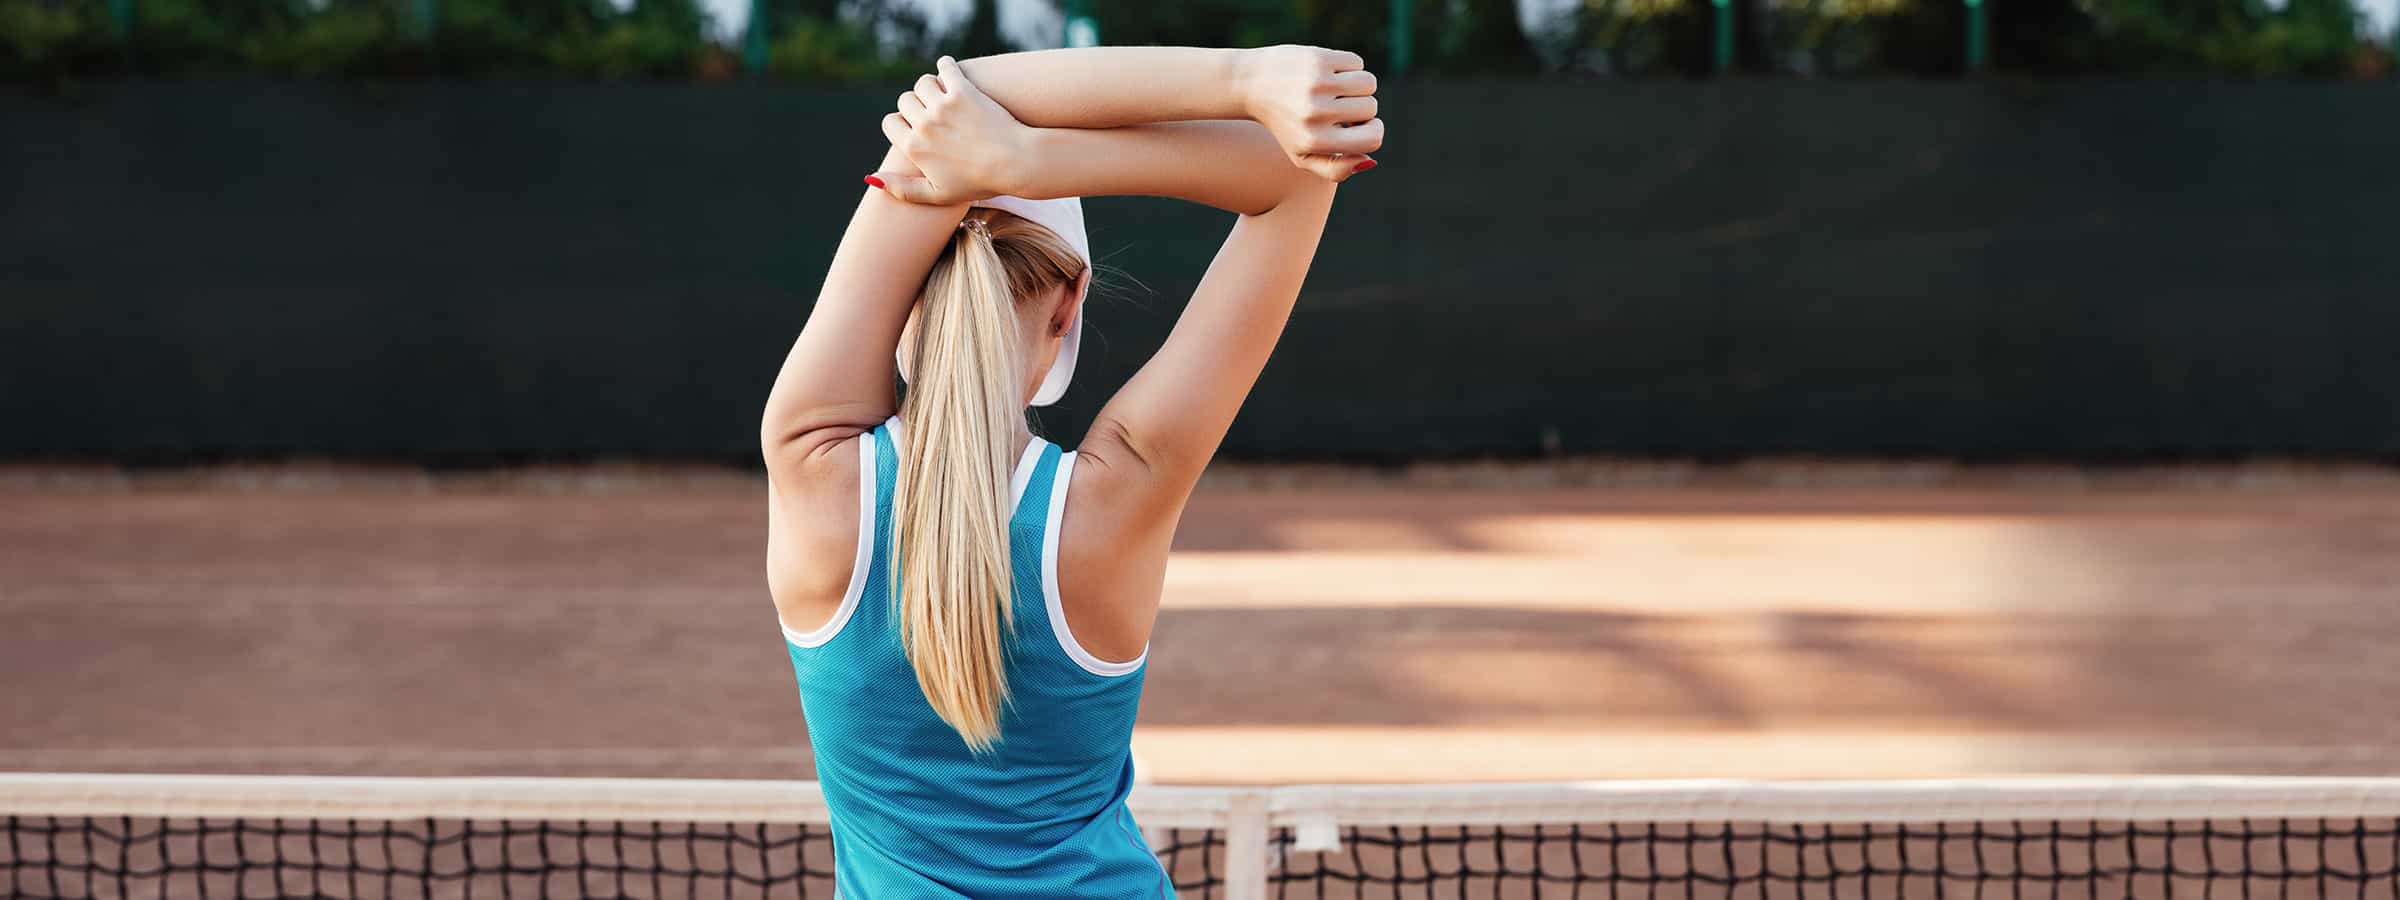 Woman stretching on a tennis court